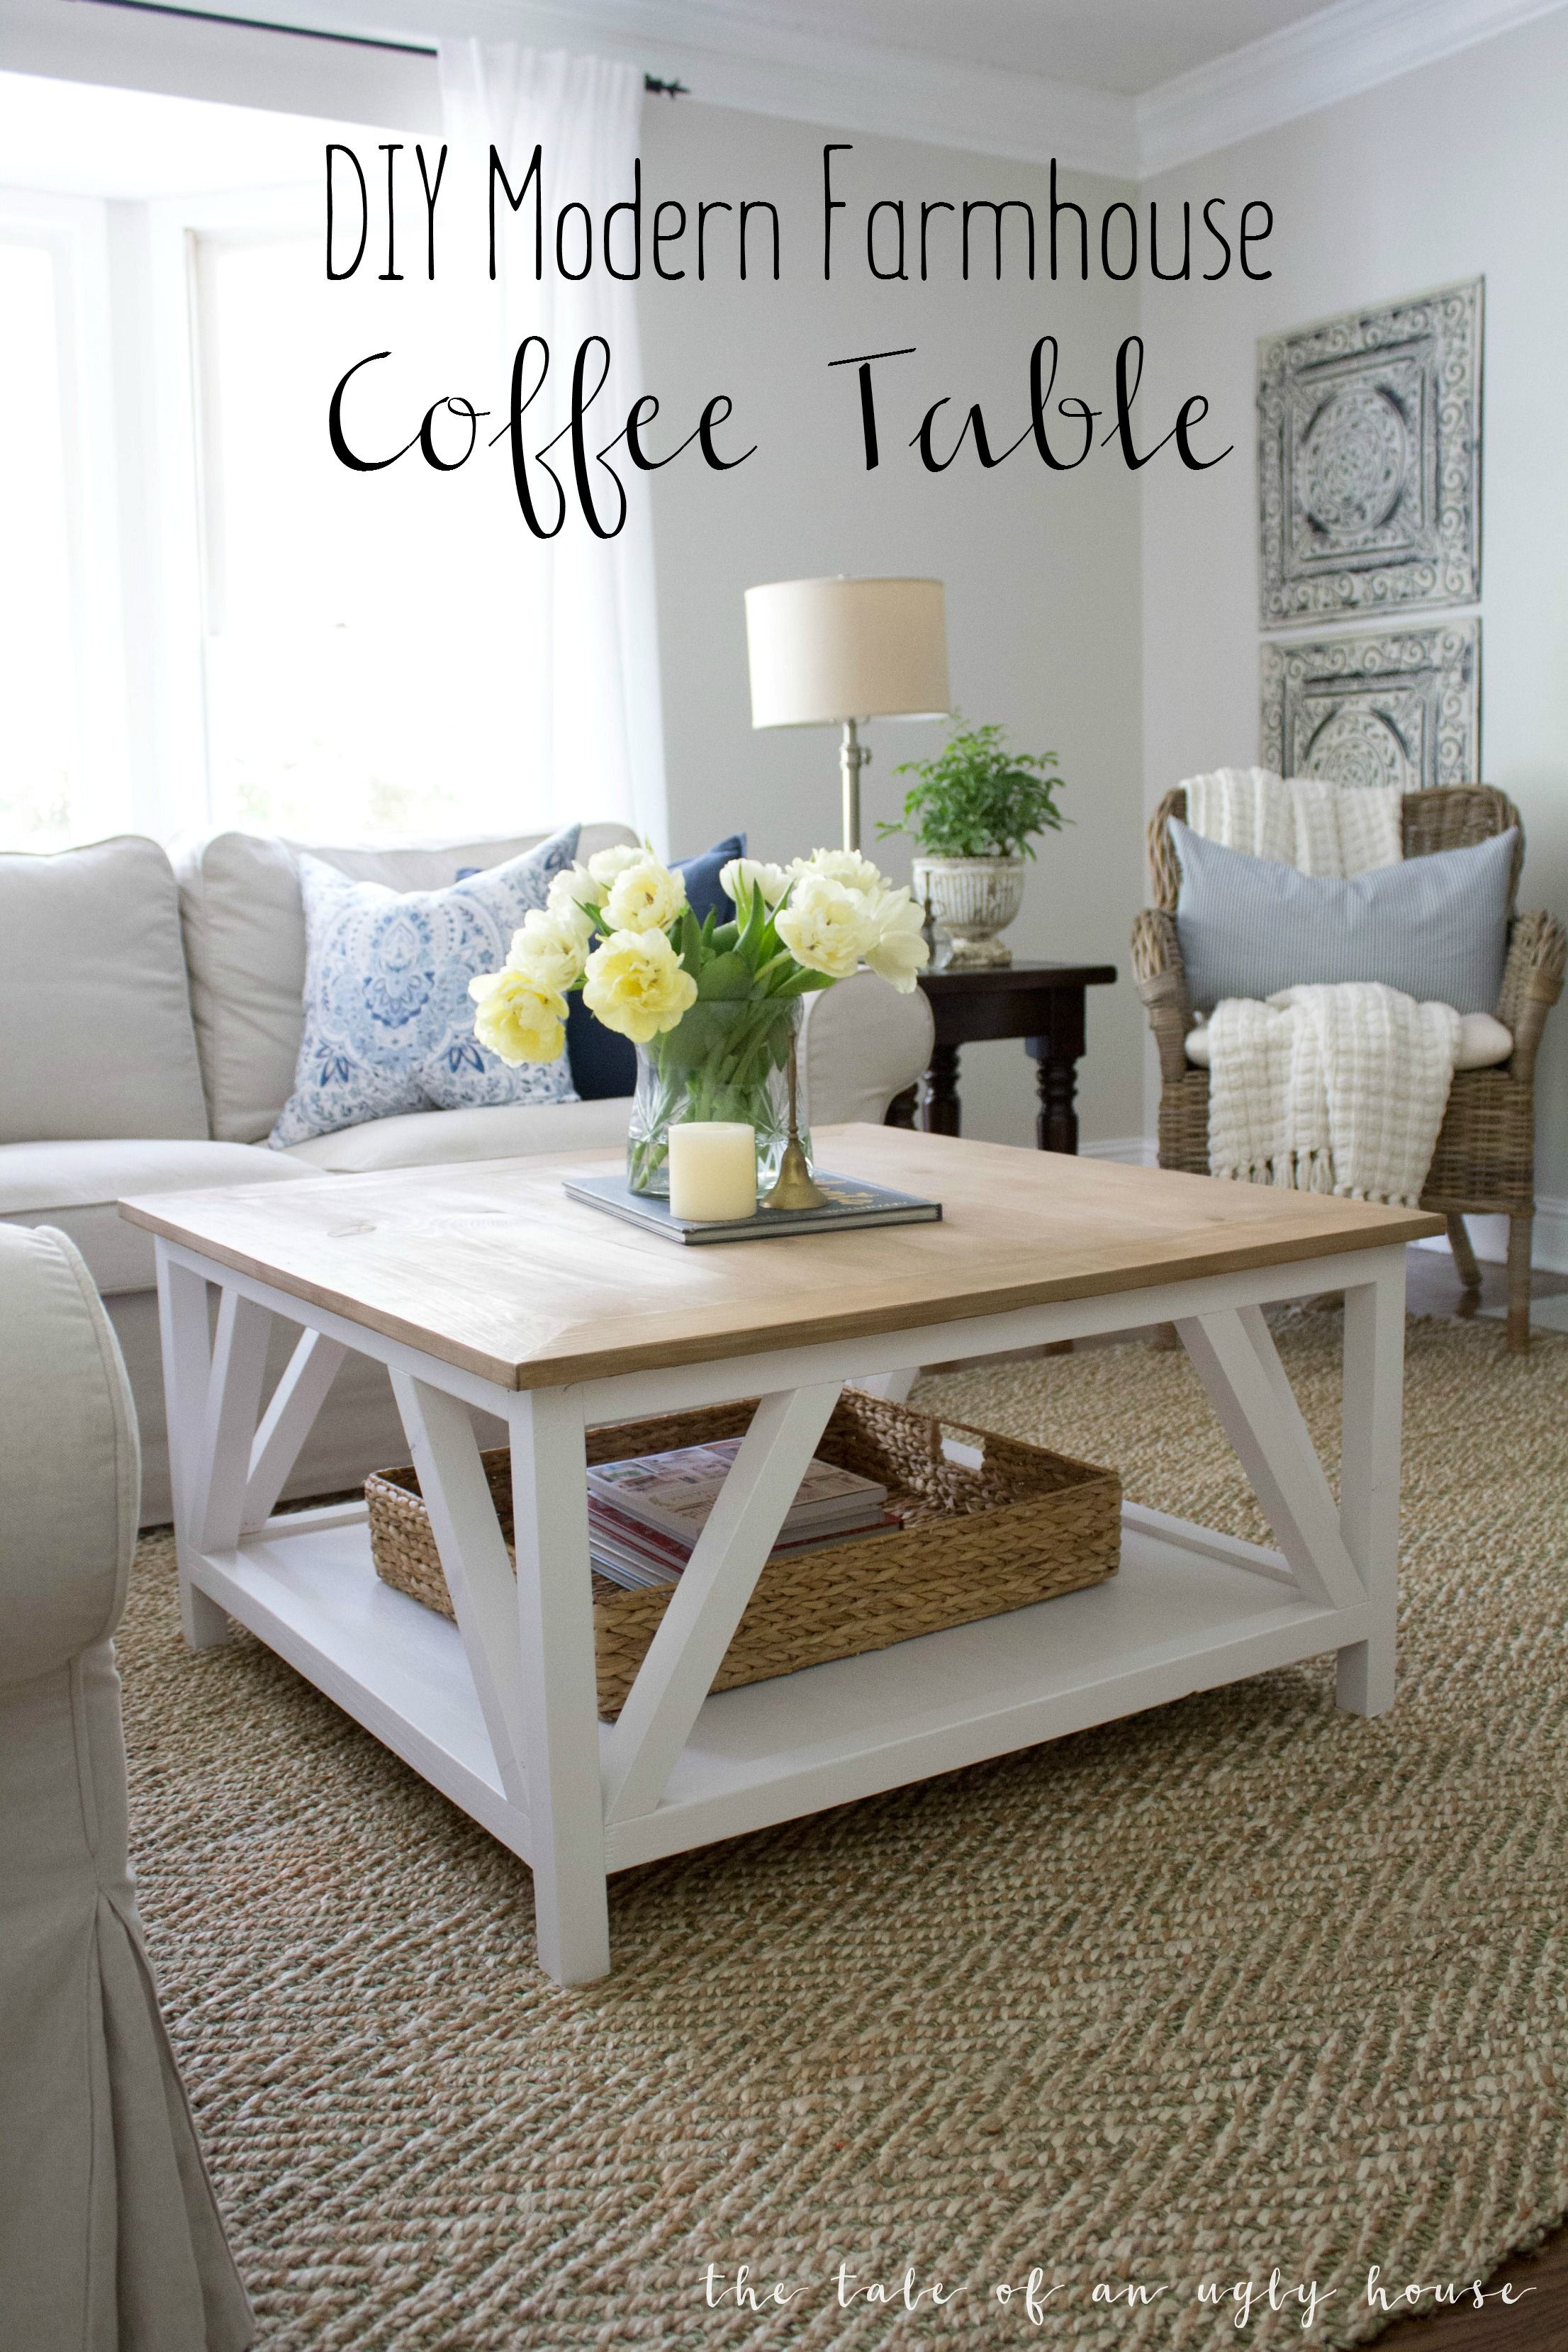 how build diy modern farmhouse coffee table classic square end with painted base and rustic stained top complete bottom shelf gray distressed furniture cool night tables living